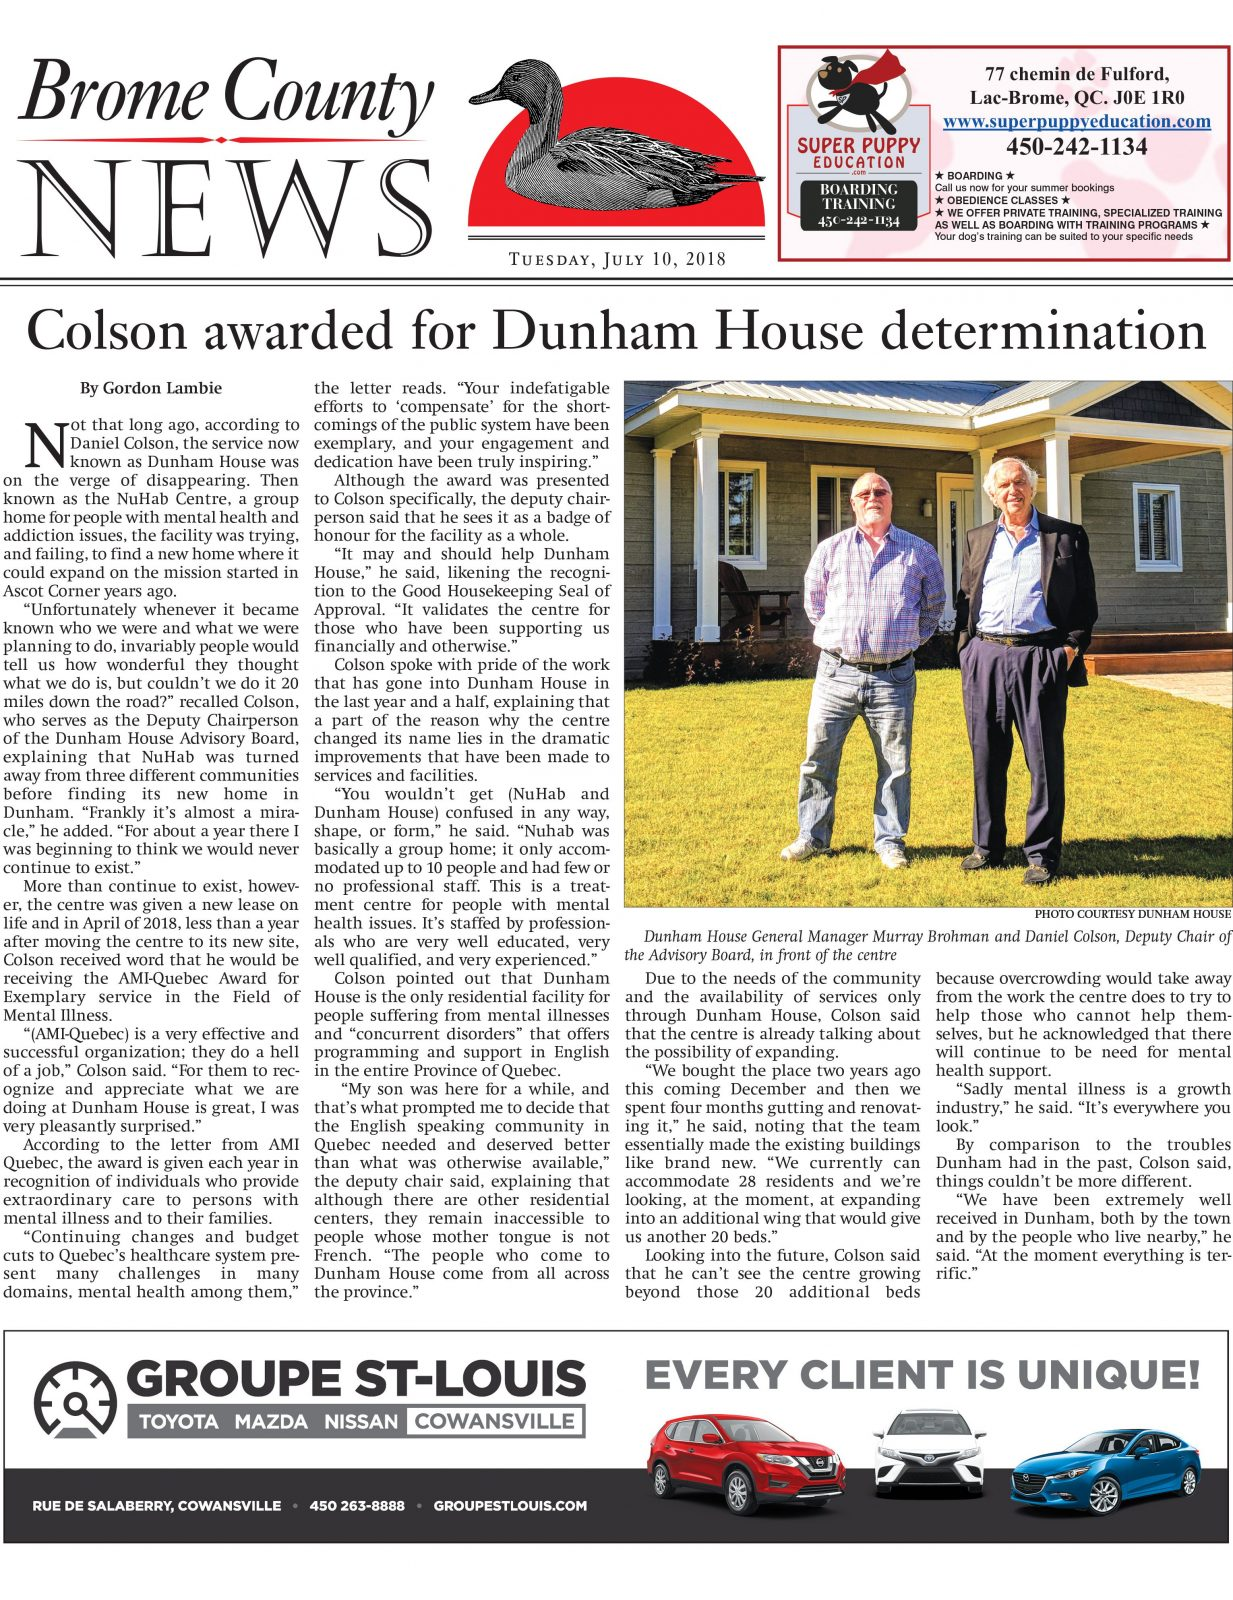 Brome County News July 10, 2018 Edition